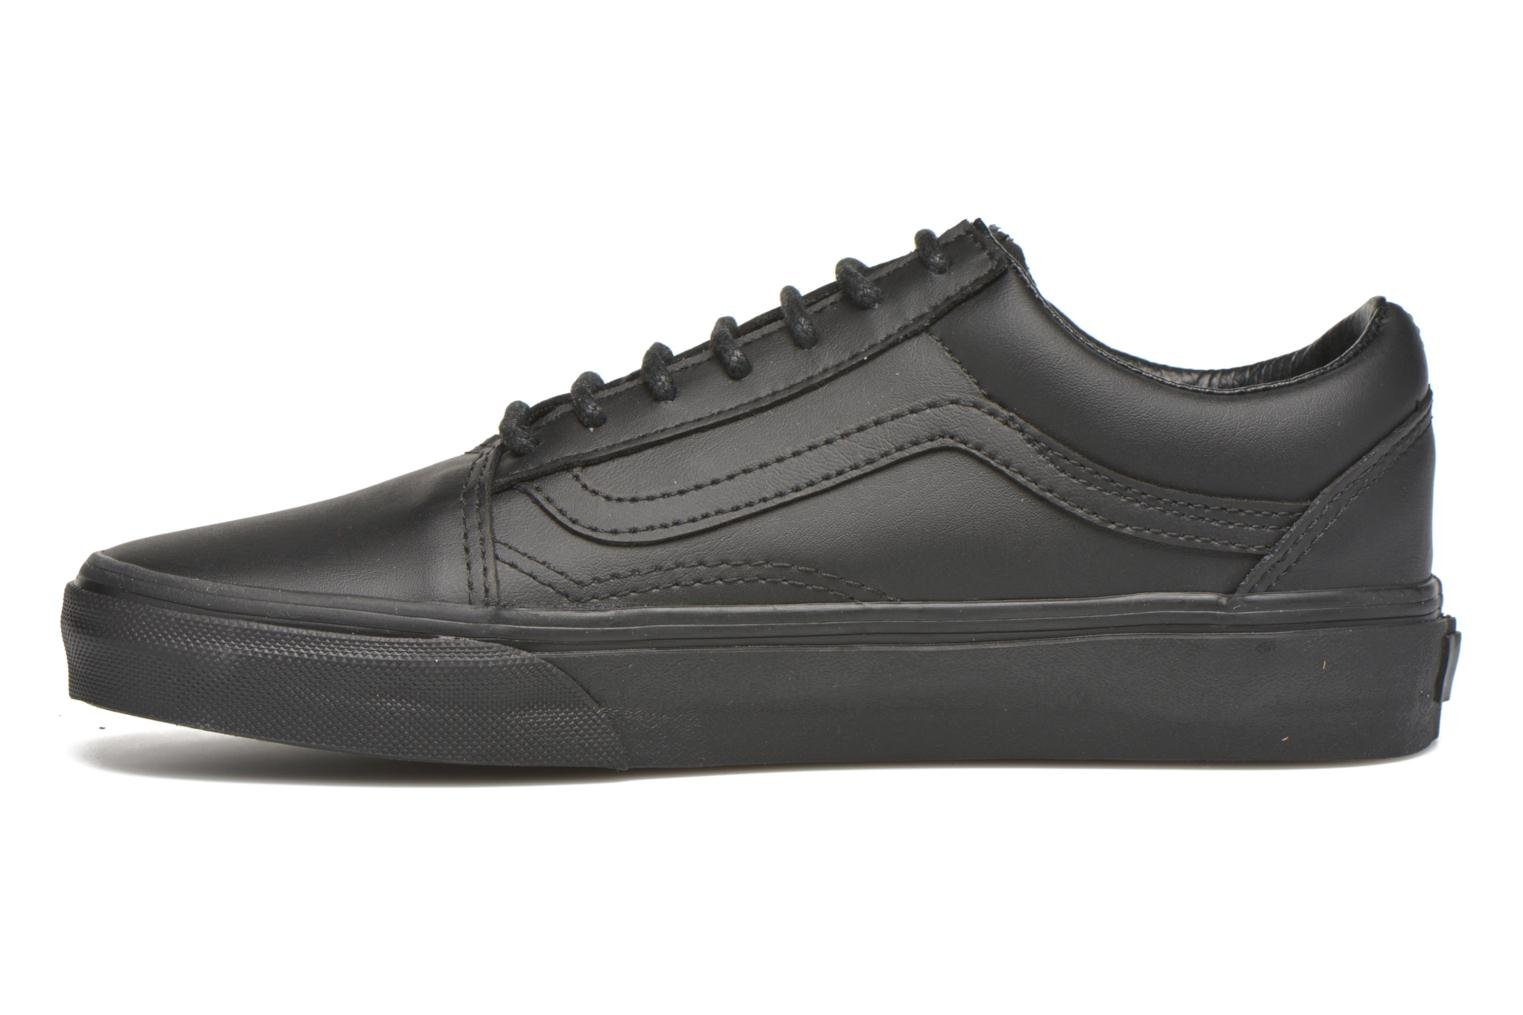 Old Skool Zip (Gunmetal) Black/Black